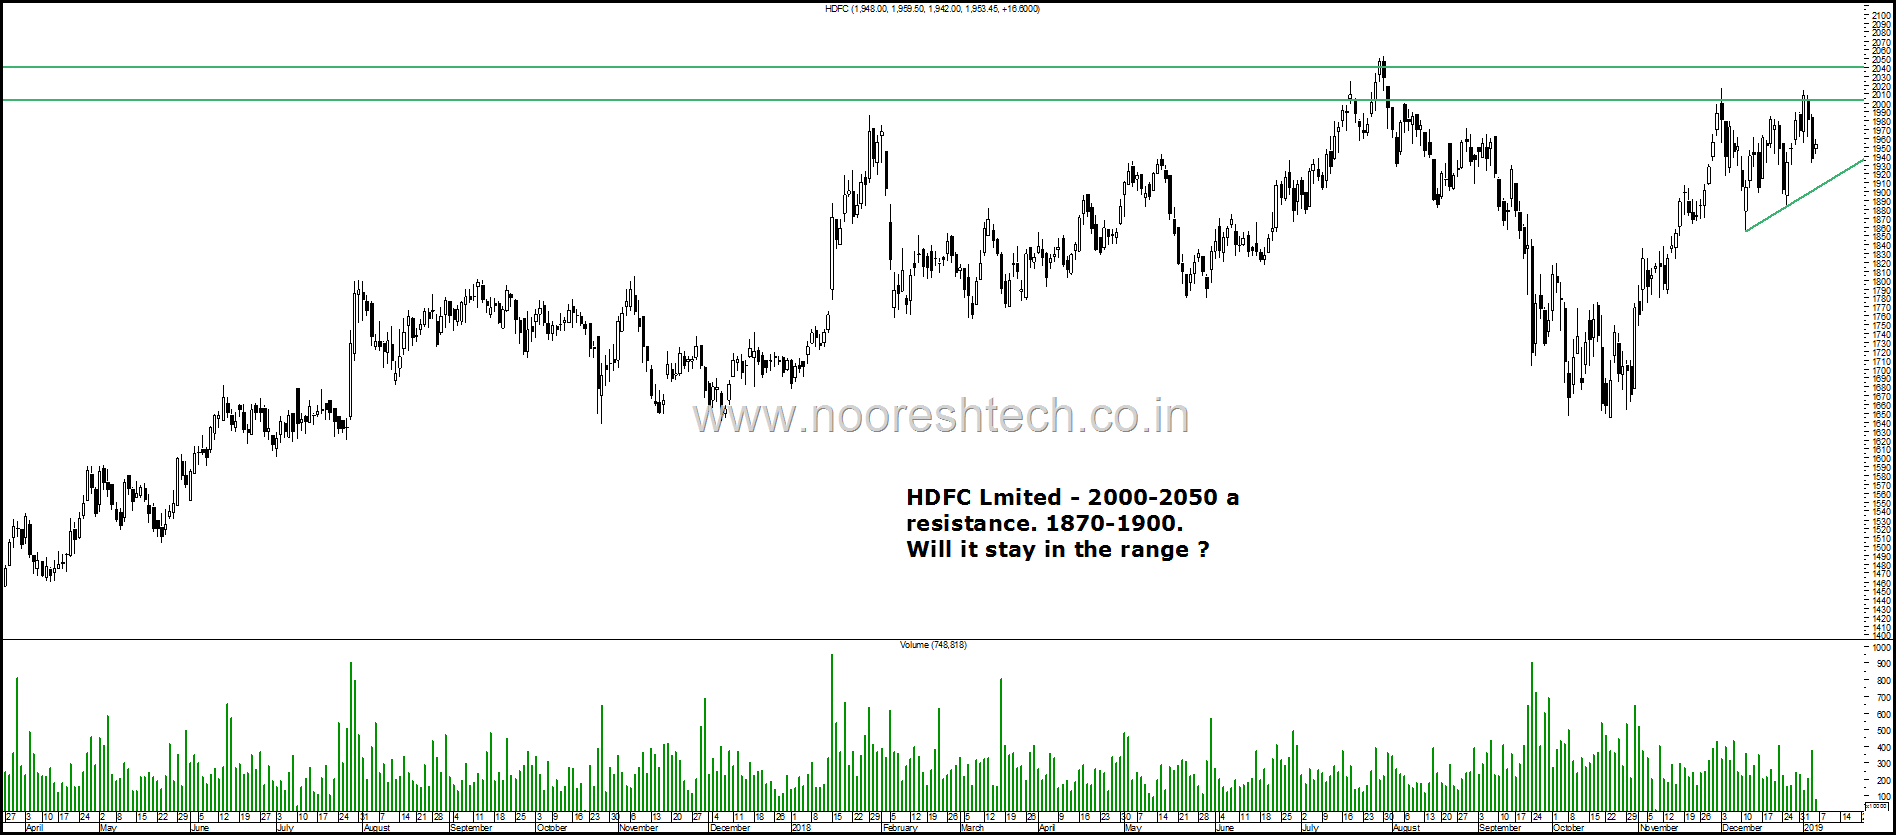 HDFC Limited Range